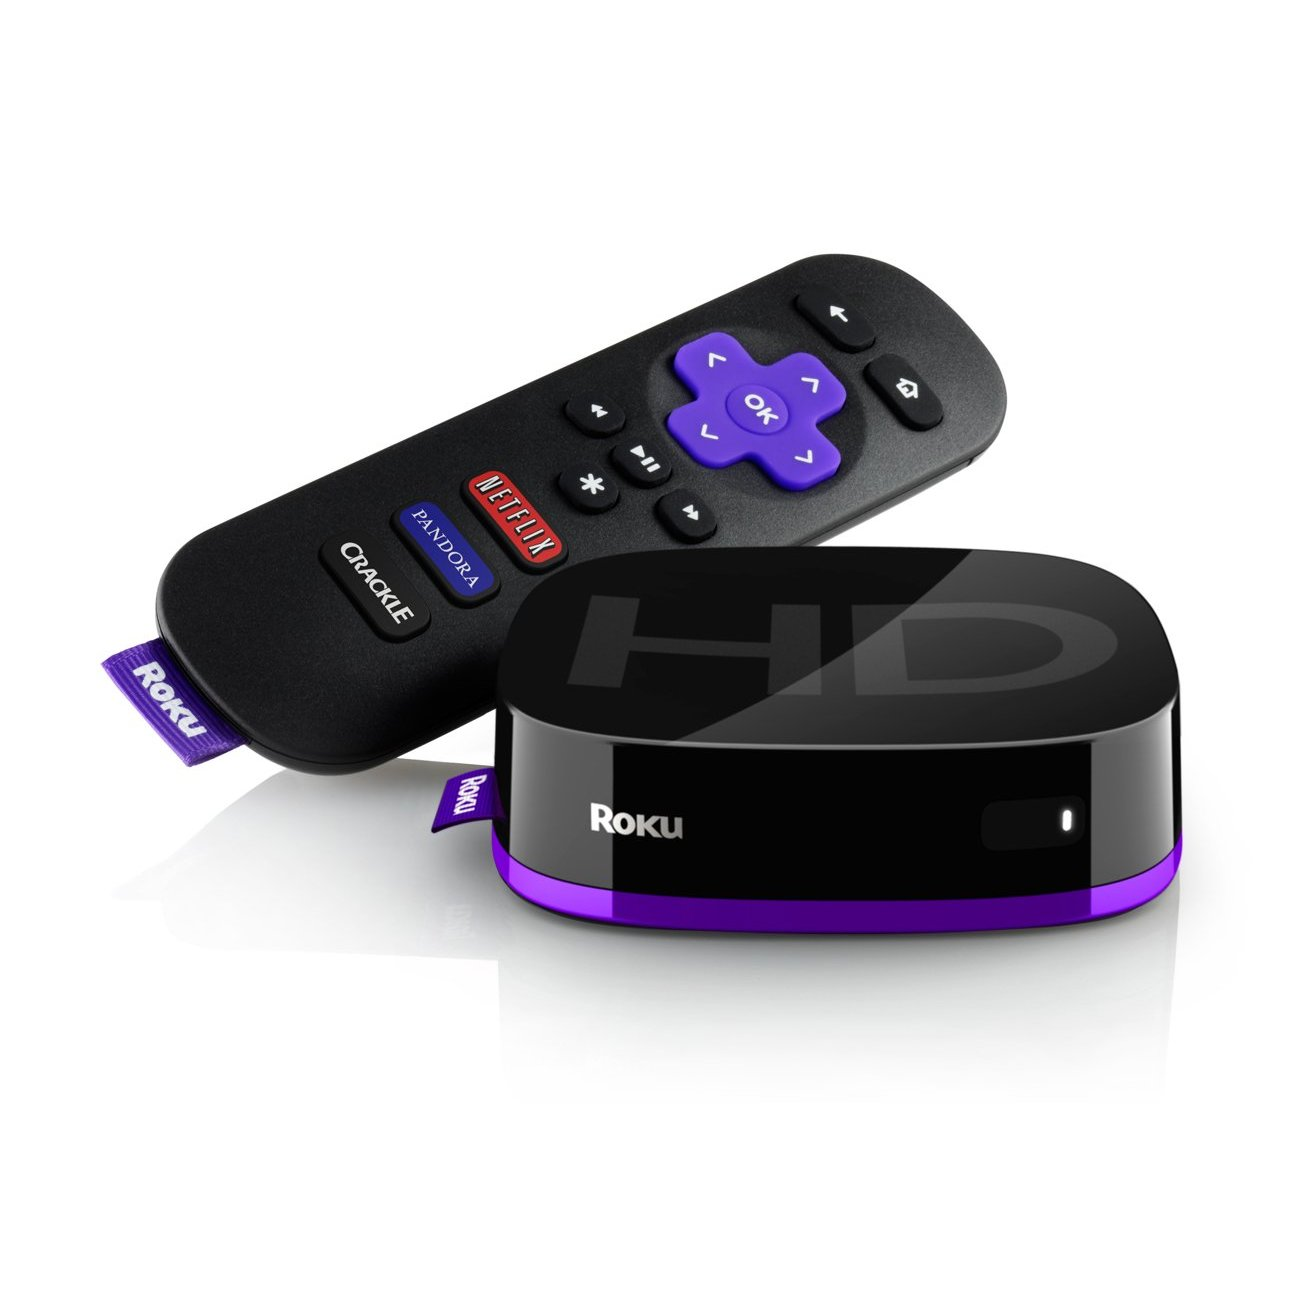 roku wireless setup